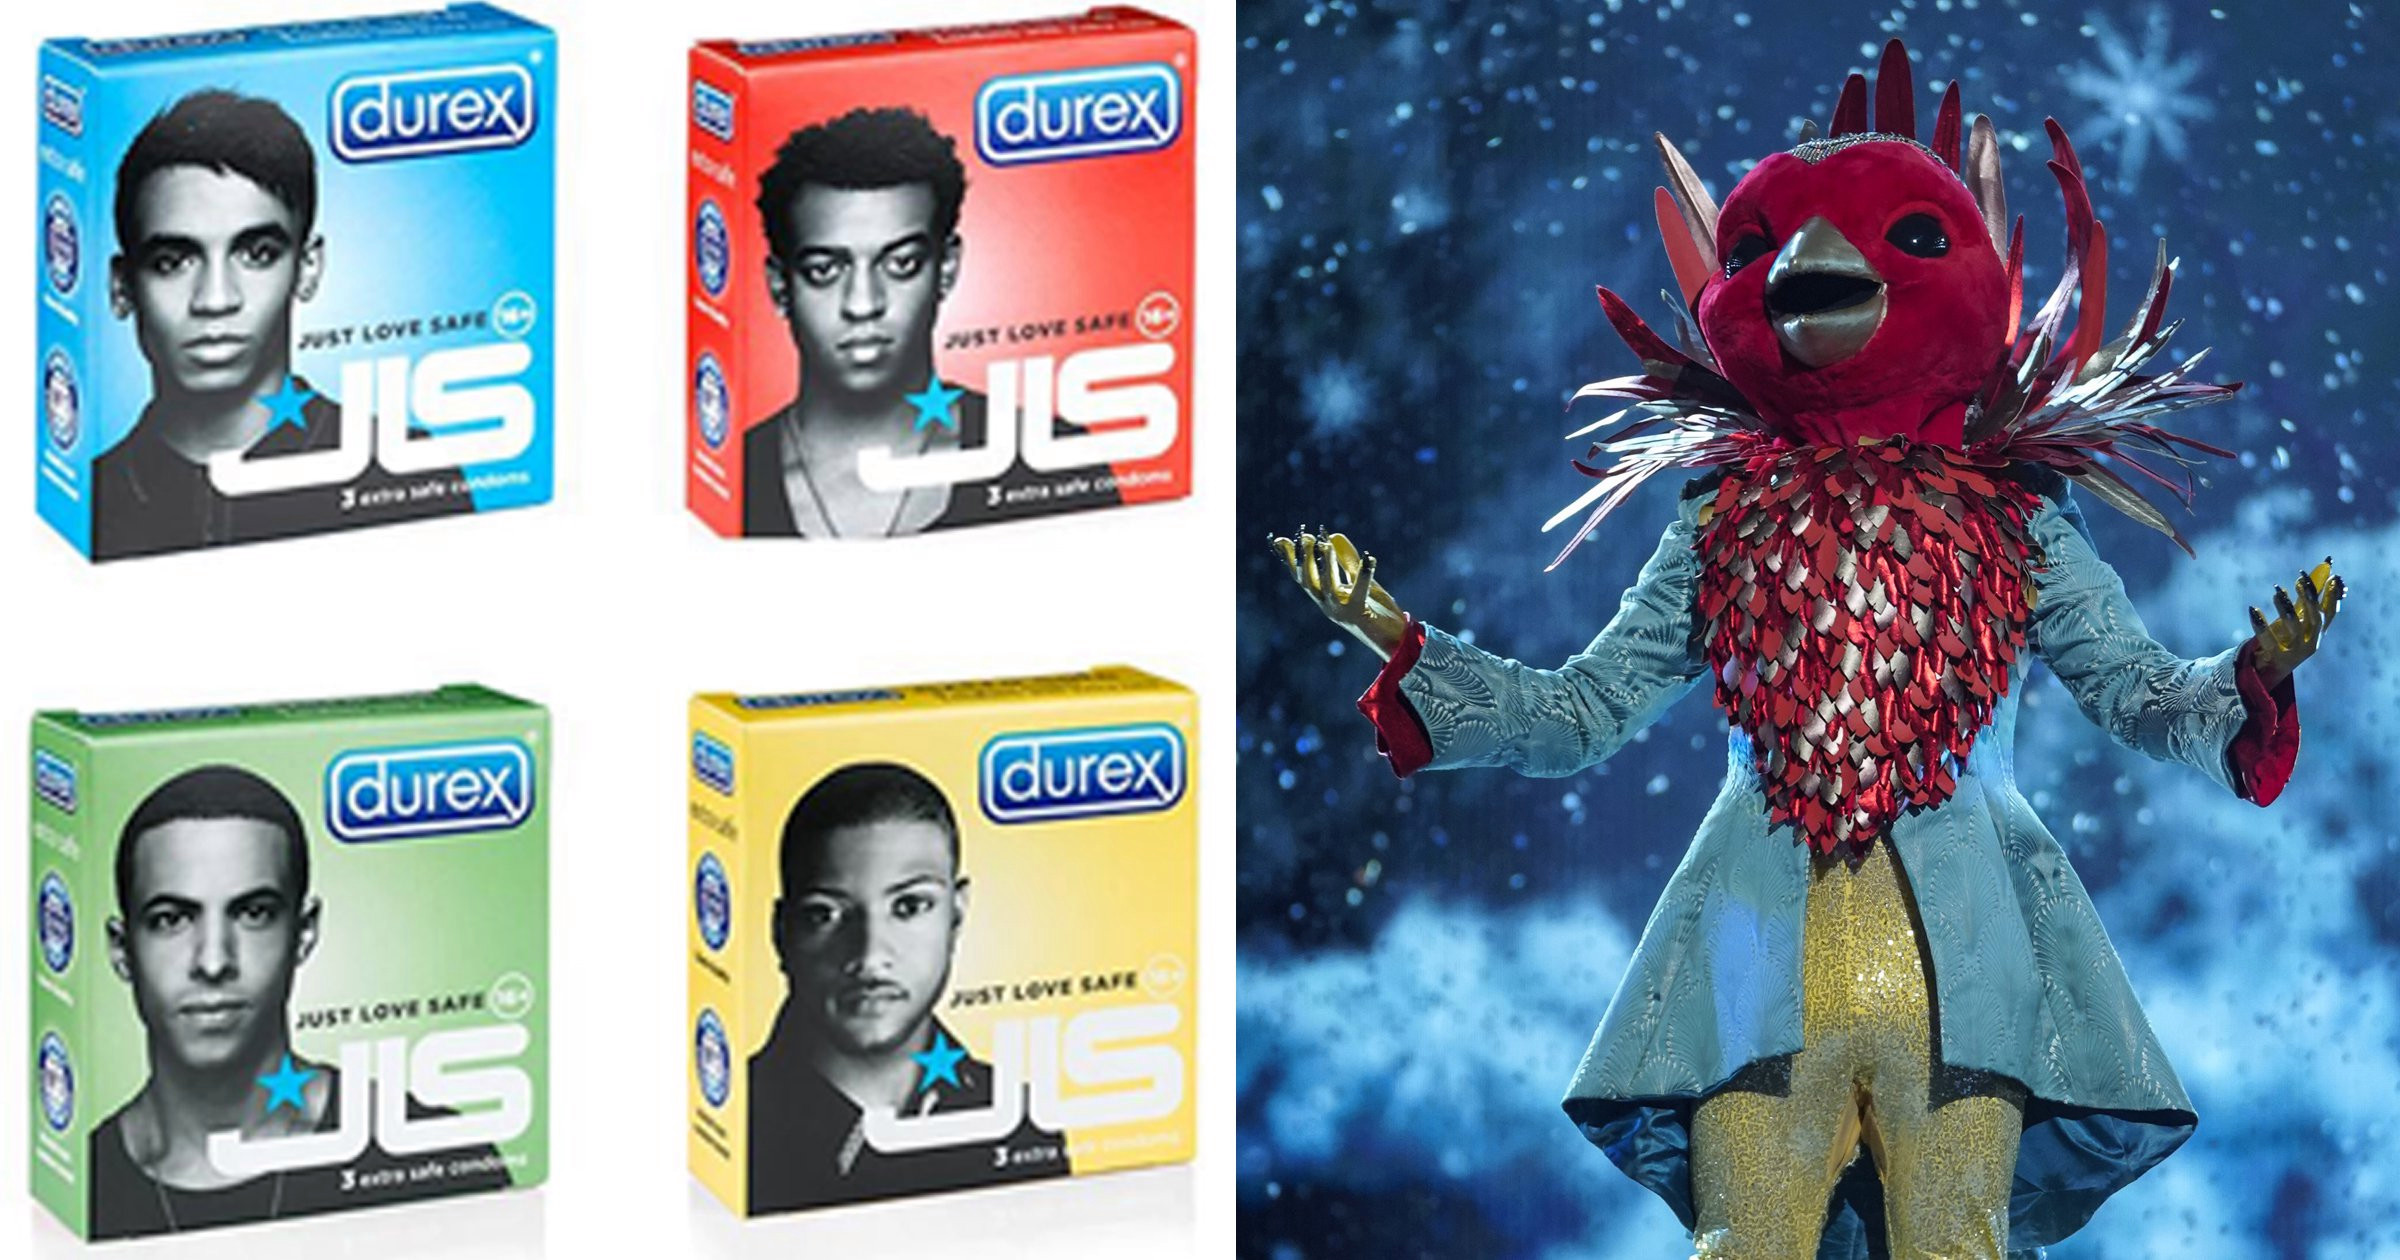 The Masked Singer: Do condoms prove Robin is Aston Merrygold?